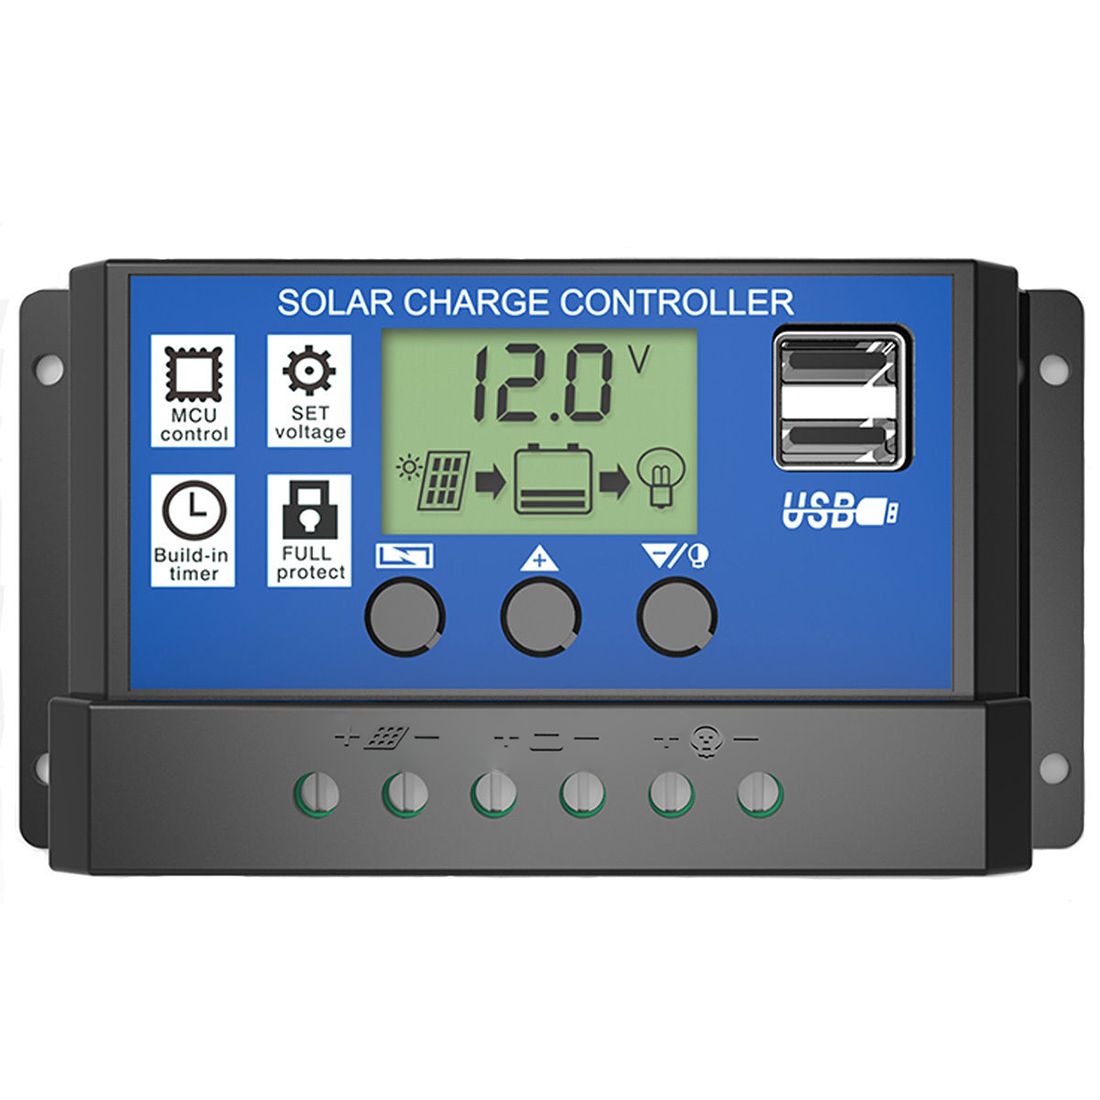 Pwm Solar Charge Controller Circuit Diagram 2005 Ford F150 Power Mirror Wiring 10 20 30a 12v 24v Lcd Display